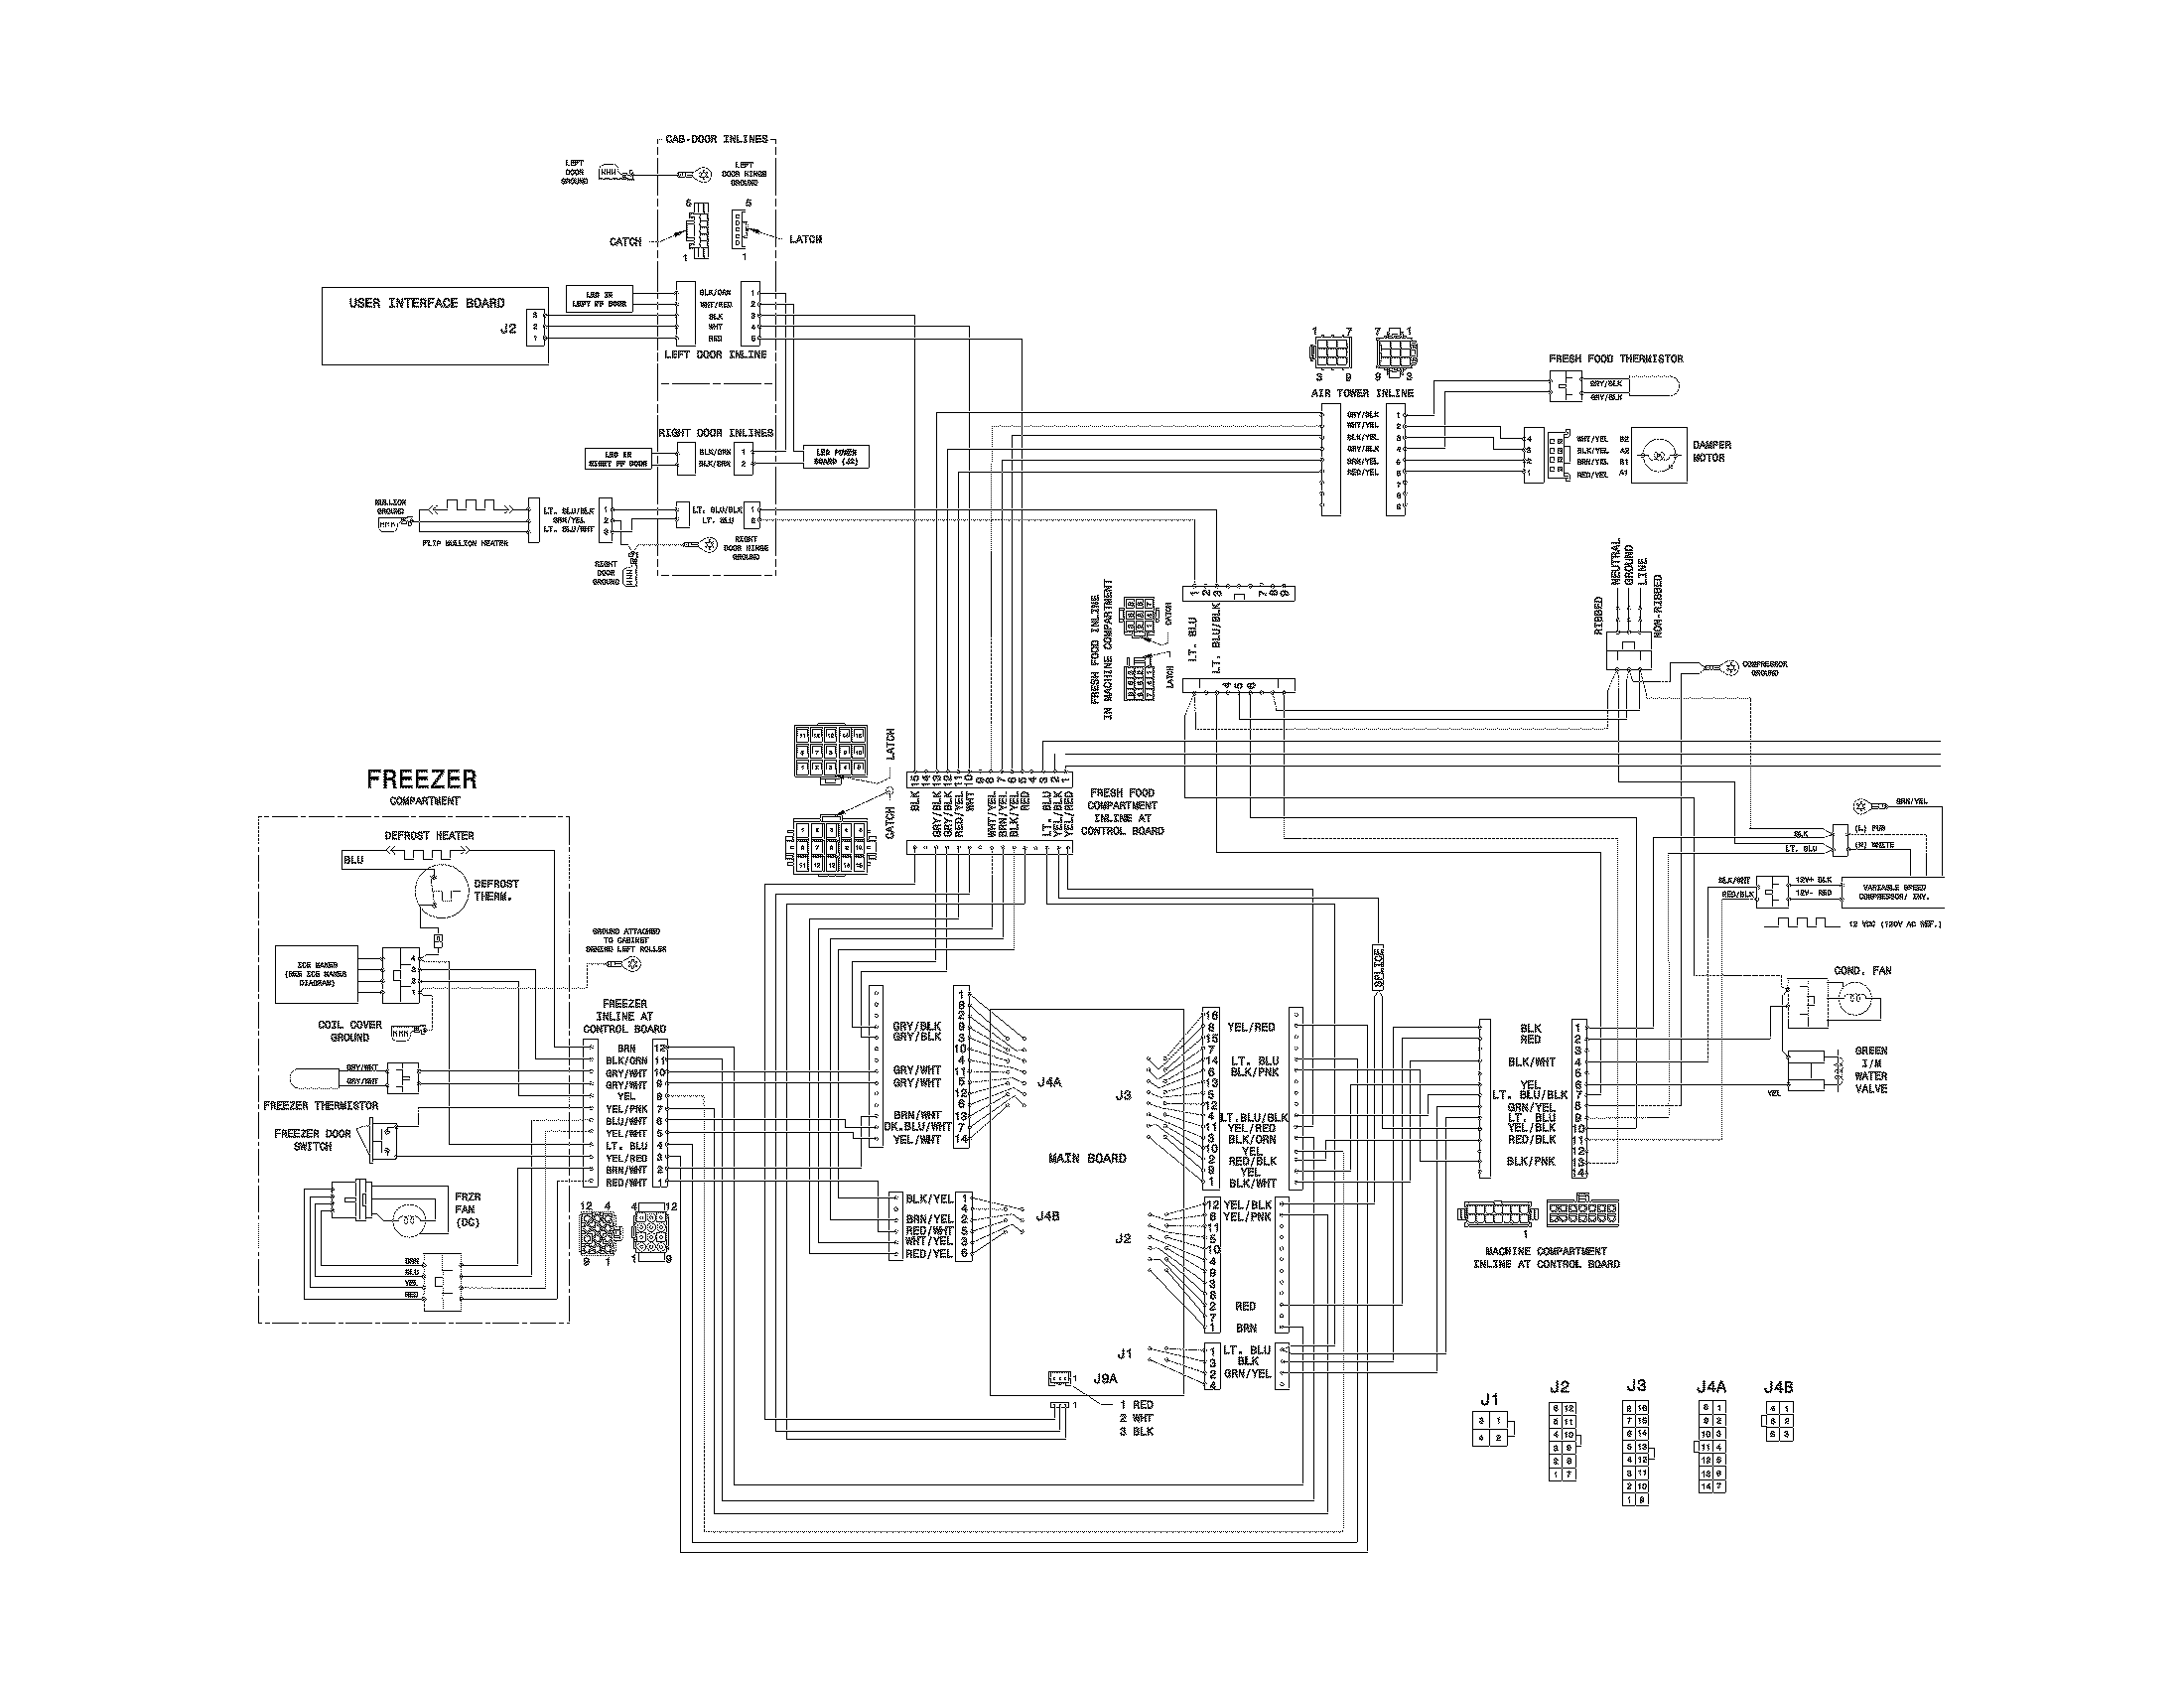 Wiring Diagram For A Dometic Refrigerator